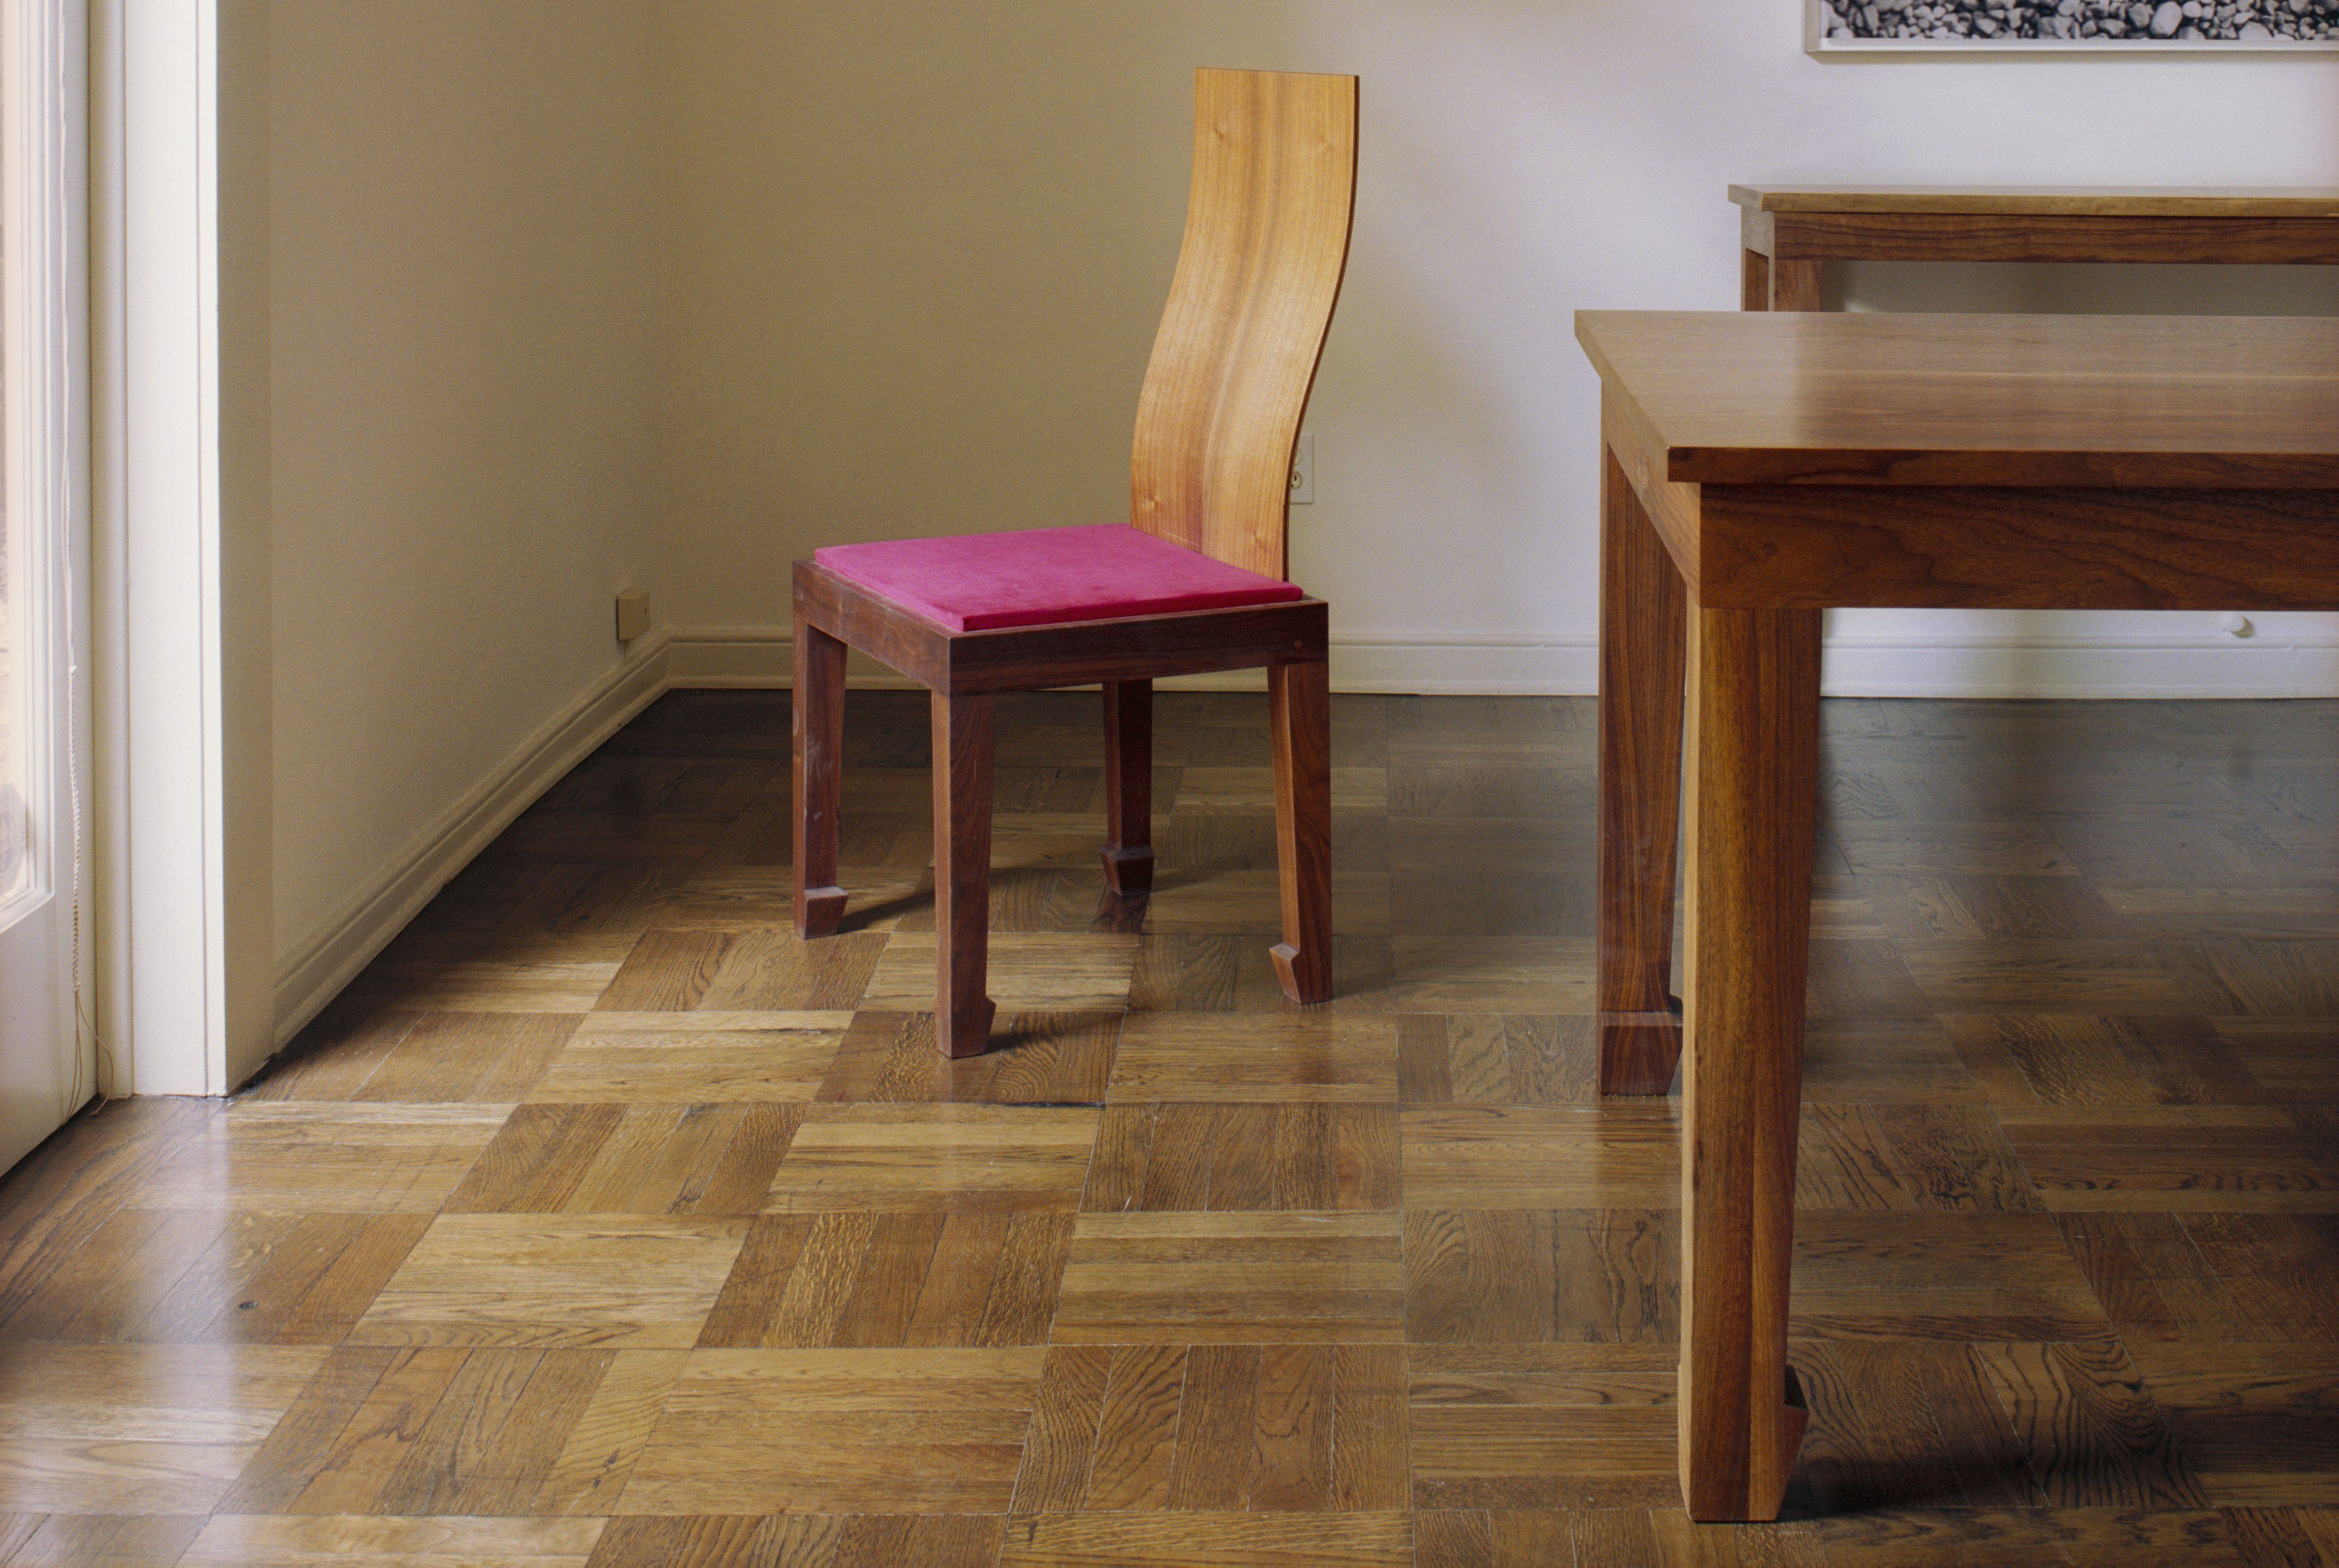 discount bruce hardwood flooring of wood parquet flooring poised for a resurgence with regard to wood parquet flooring 529502452 576c78195f9b585875a1ac13